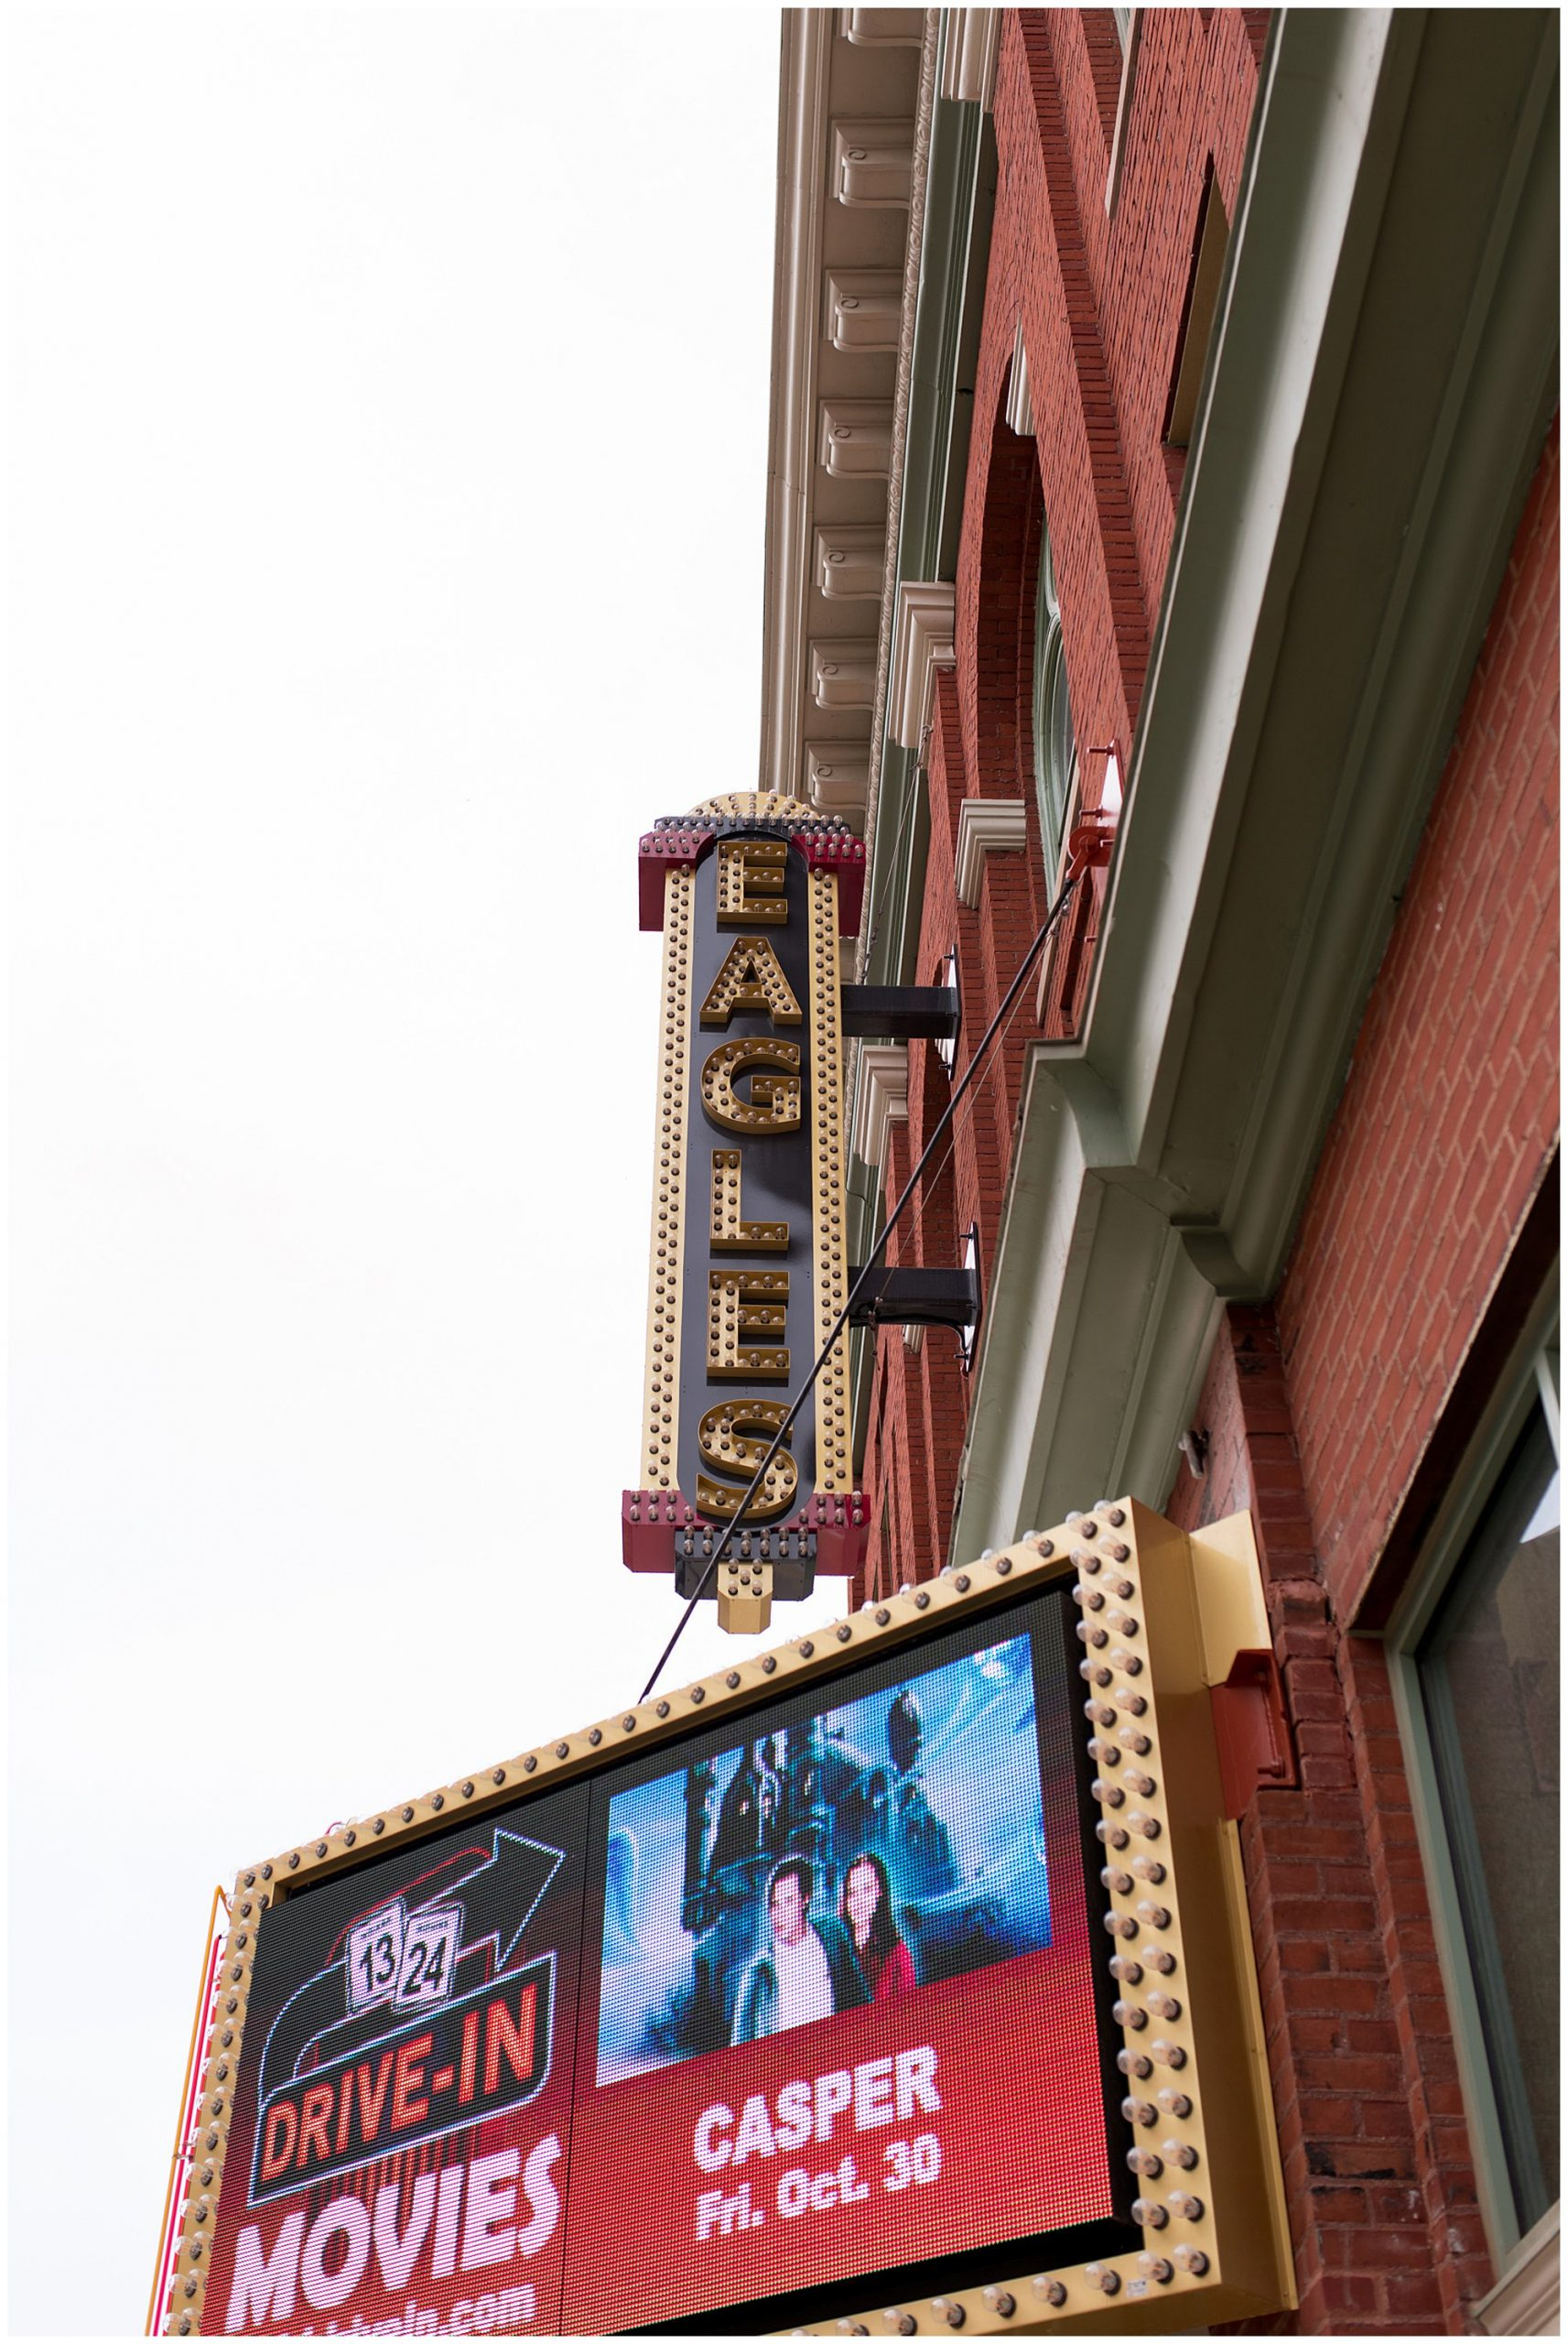 Eagles Theatre sign in Wabash Indiana